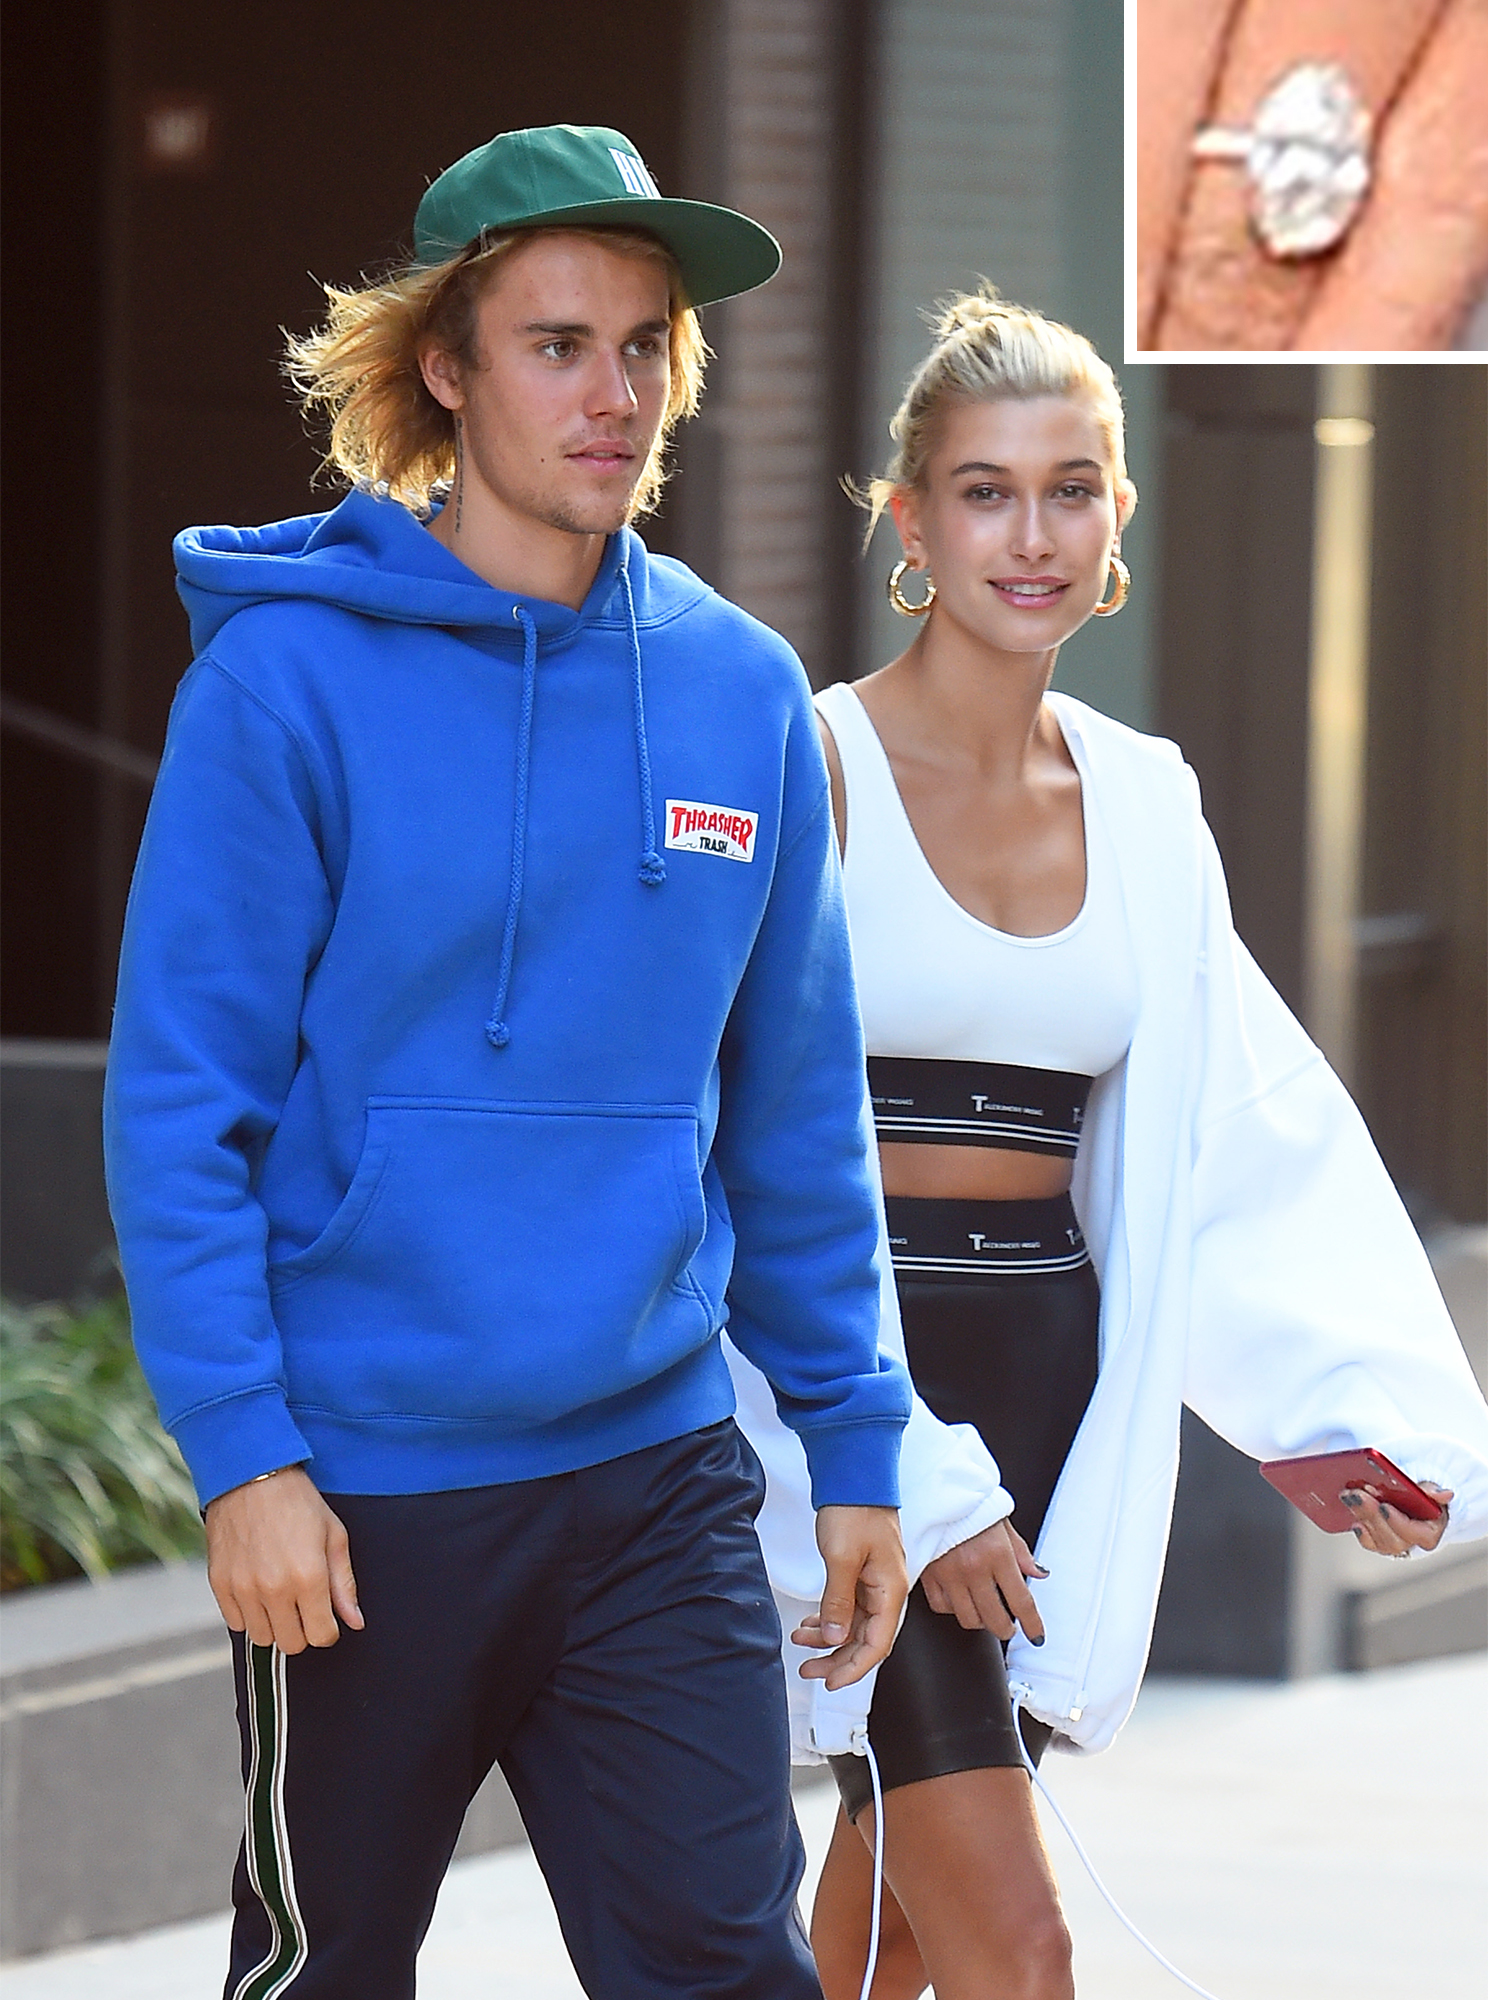 Justin Bieber leaves his apartment with his fiance Hailey Baldwin on their way to have dinner in Brooklyn New York today